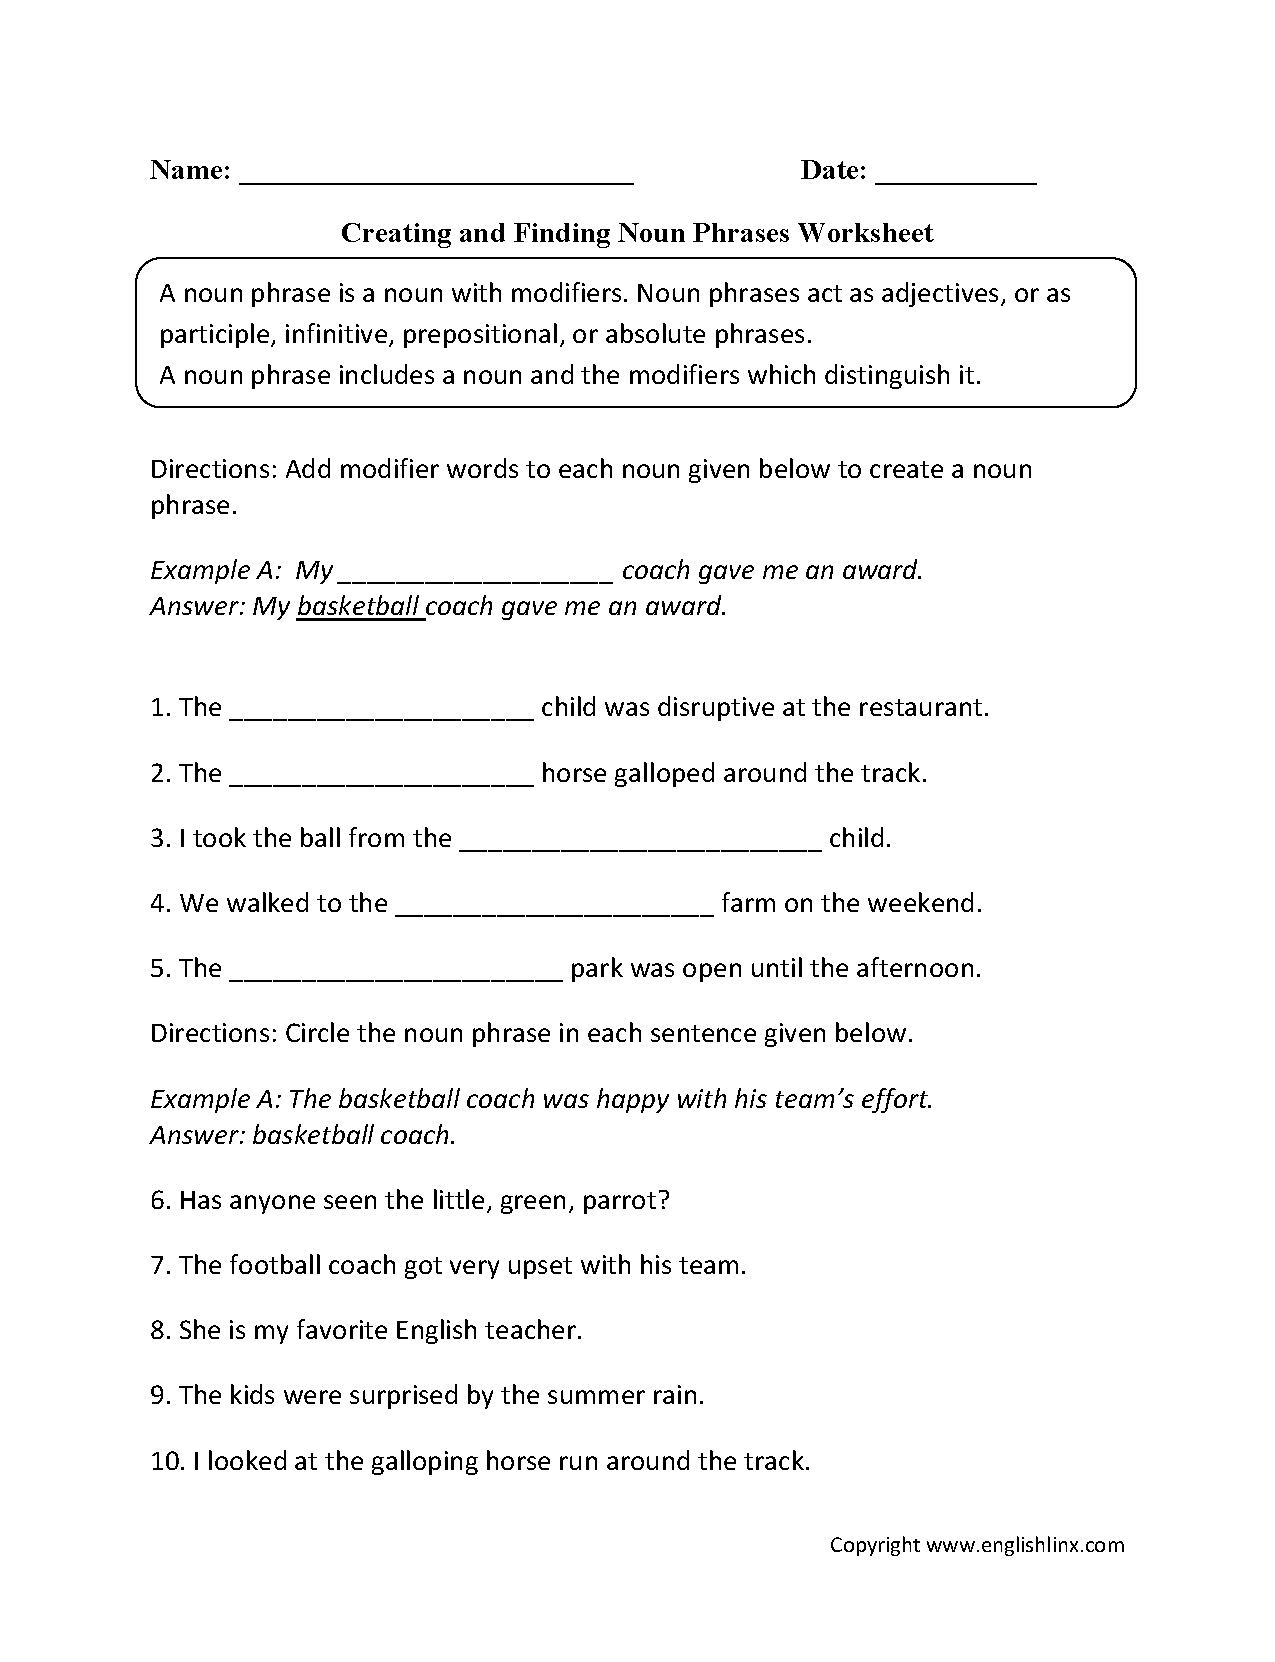 Worksheets Noun Clauses Worksheet nouns worksheets noun phrases worksheets